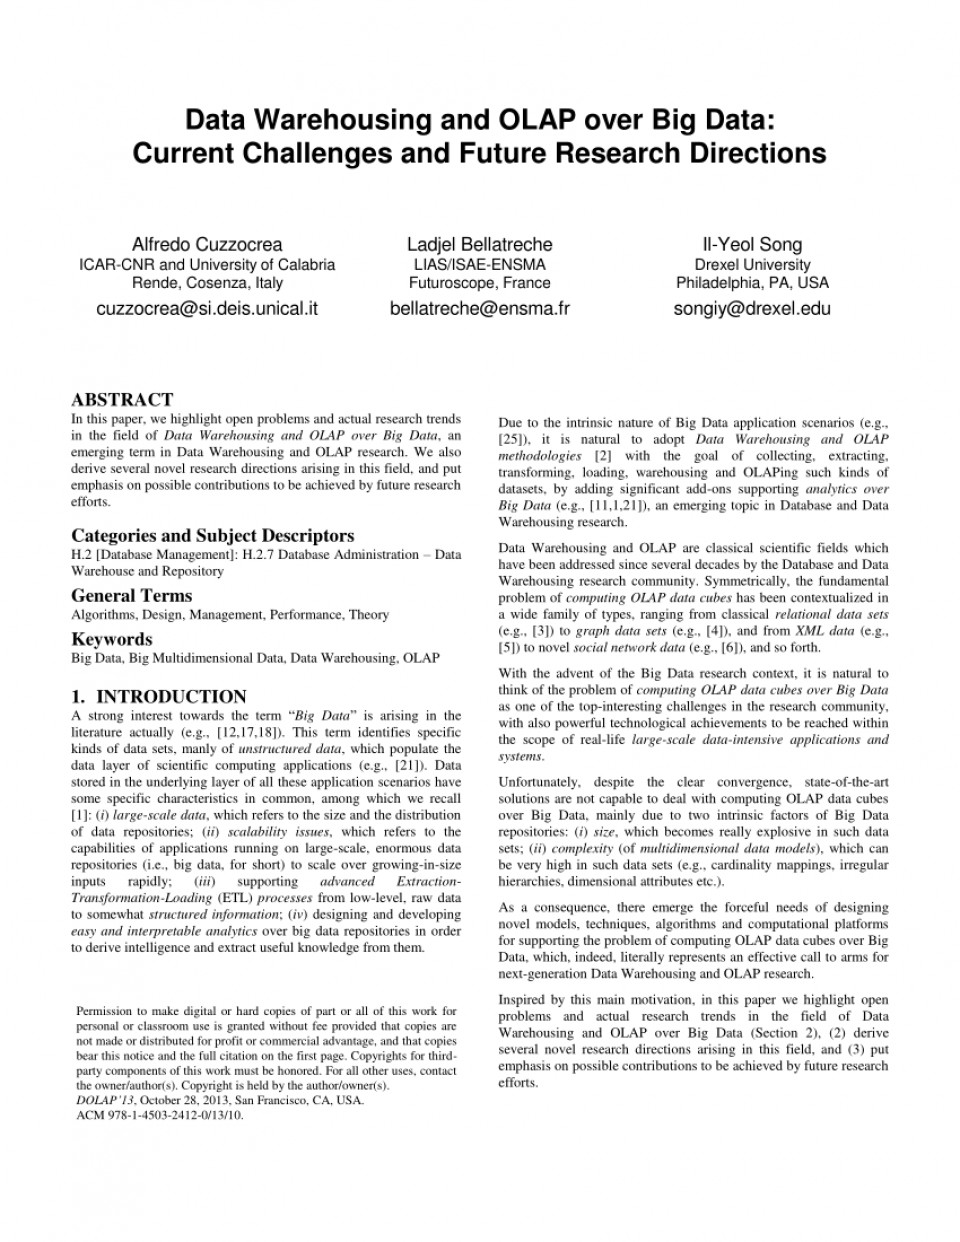 004 Largepreview Research Paper Database Design Amazing Topics 960